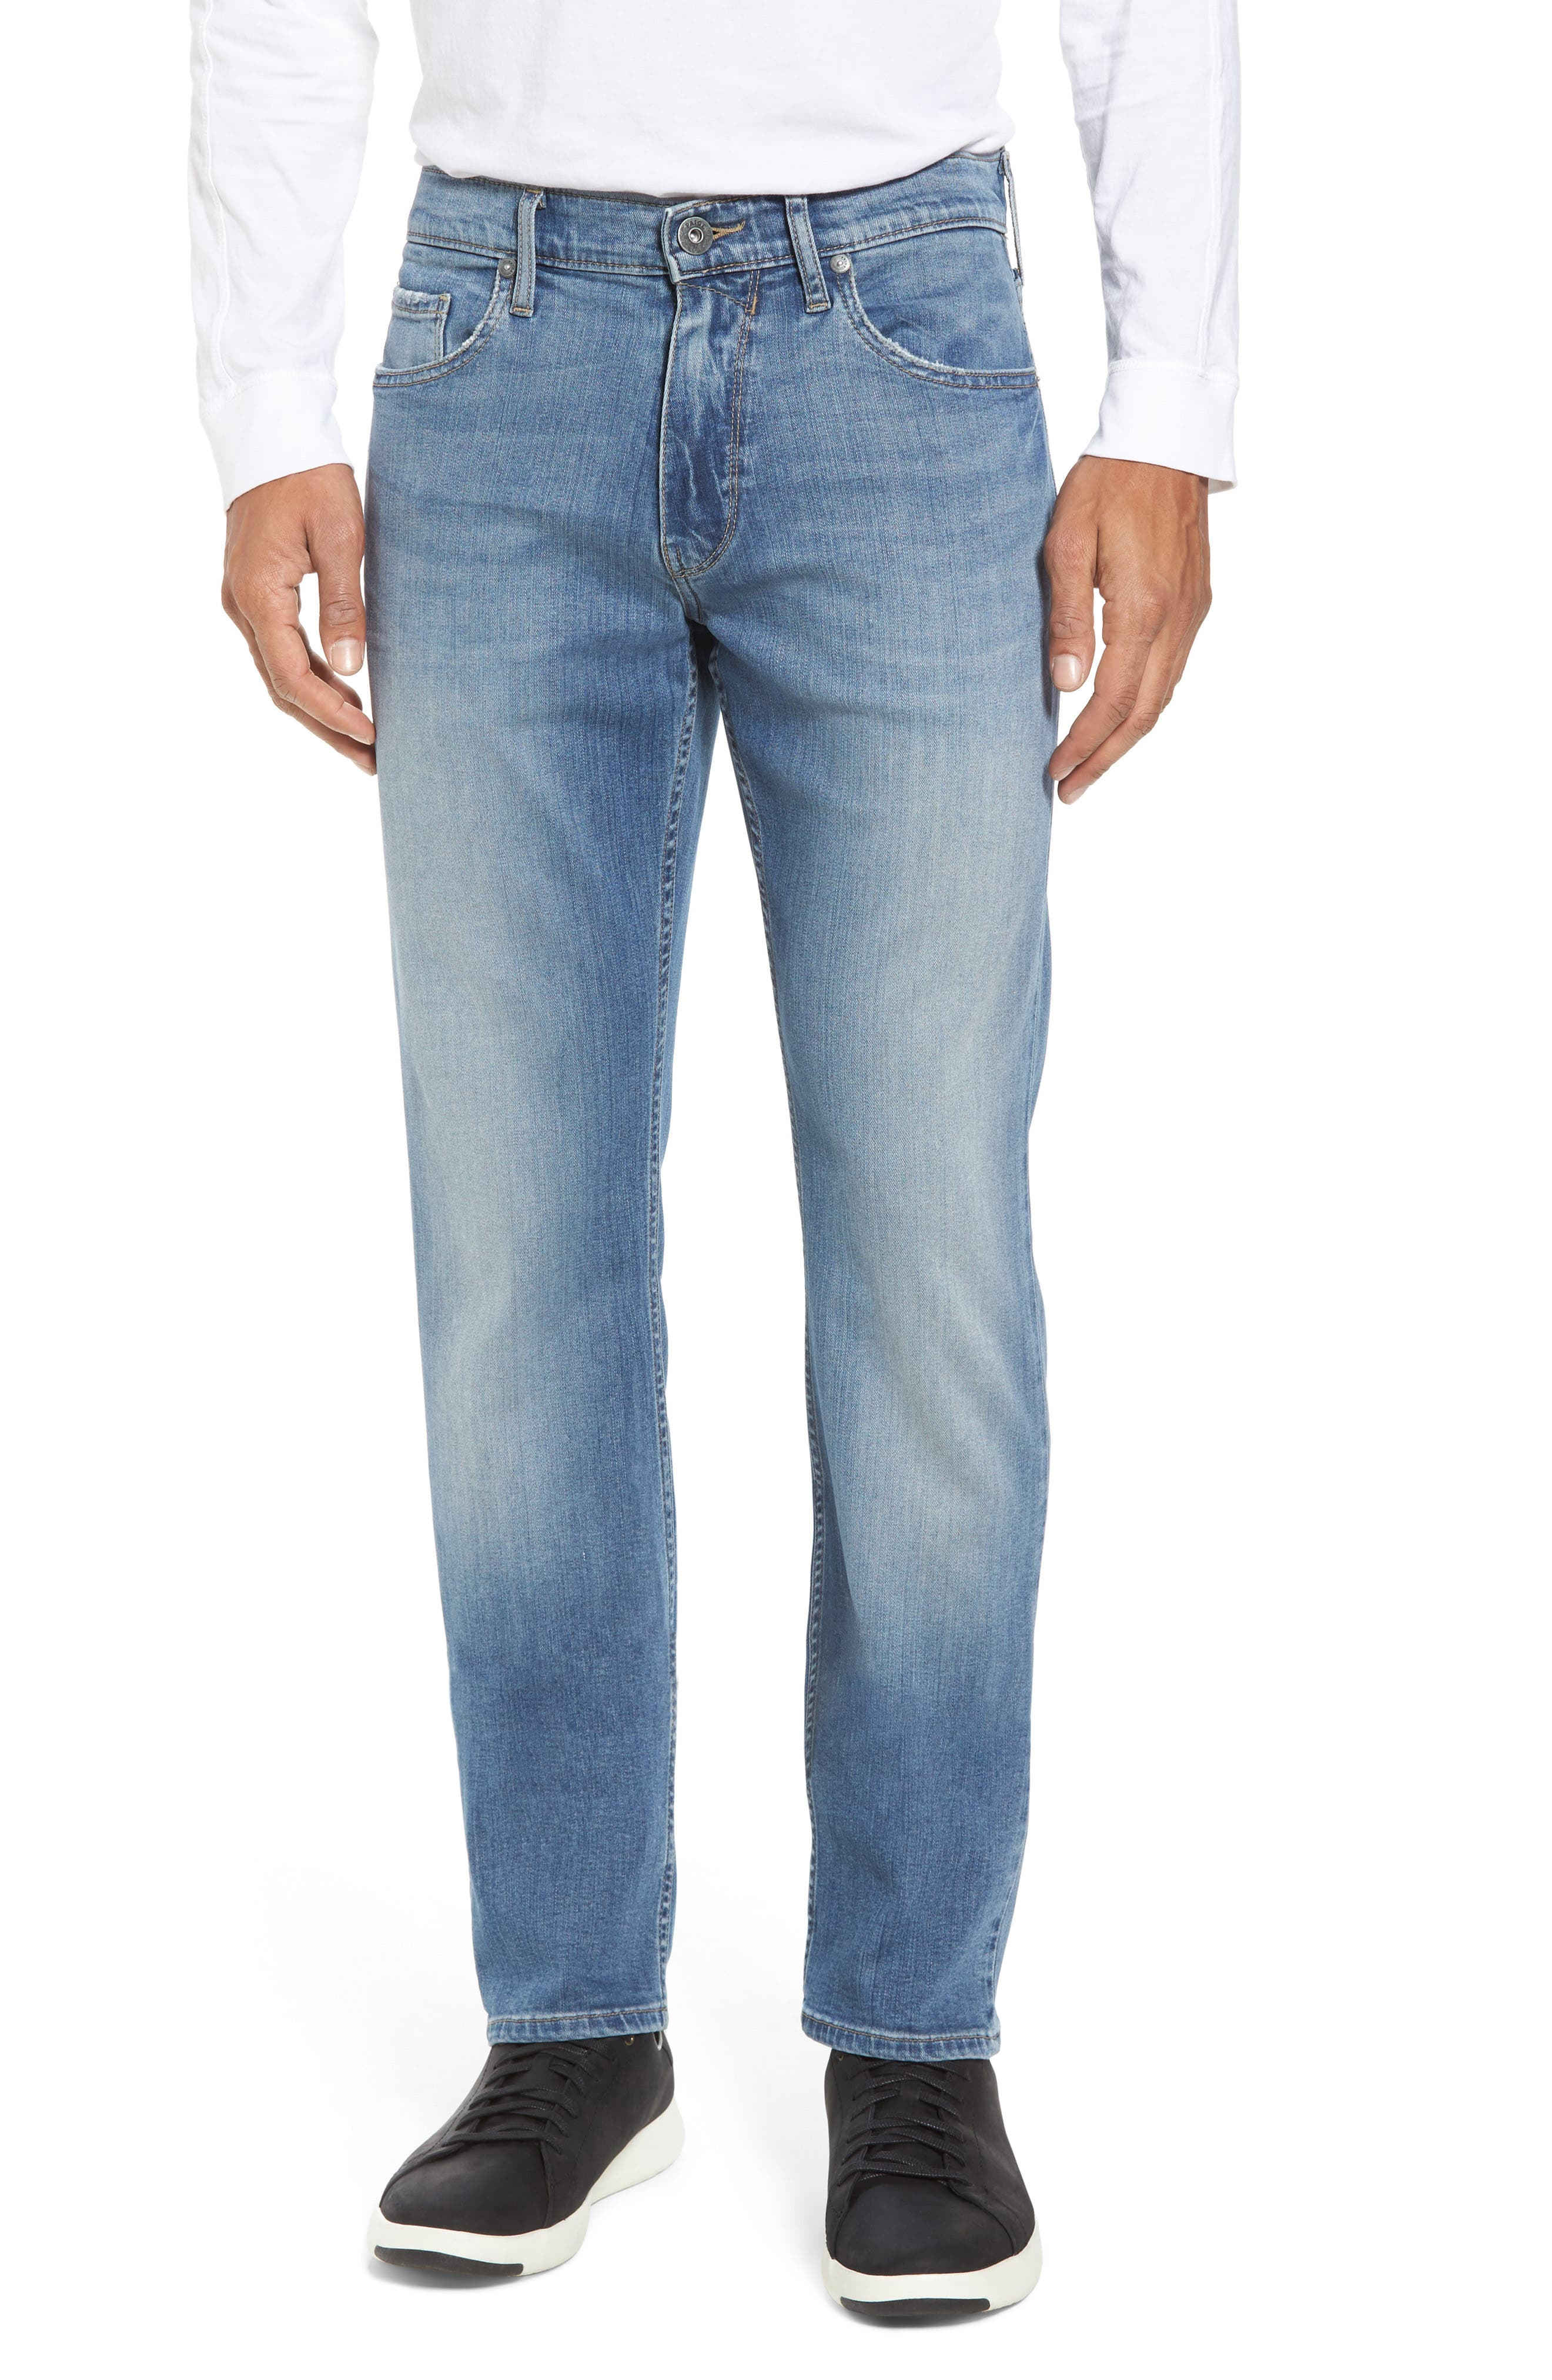 Transcend - Federal Slim Straight Fit Jeans,                         Main,                         color, 400